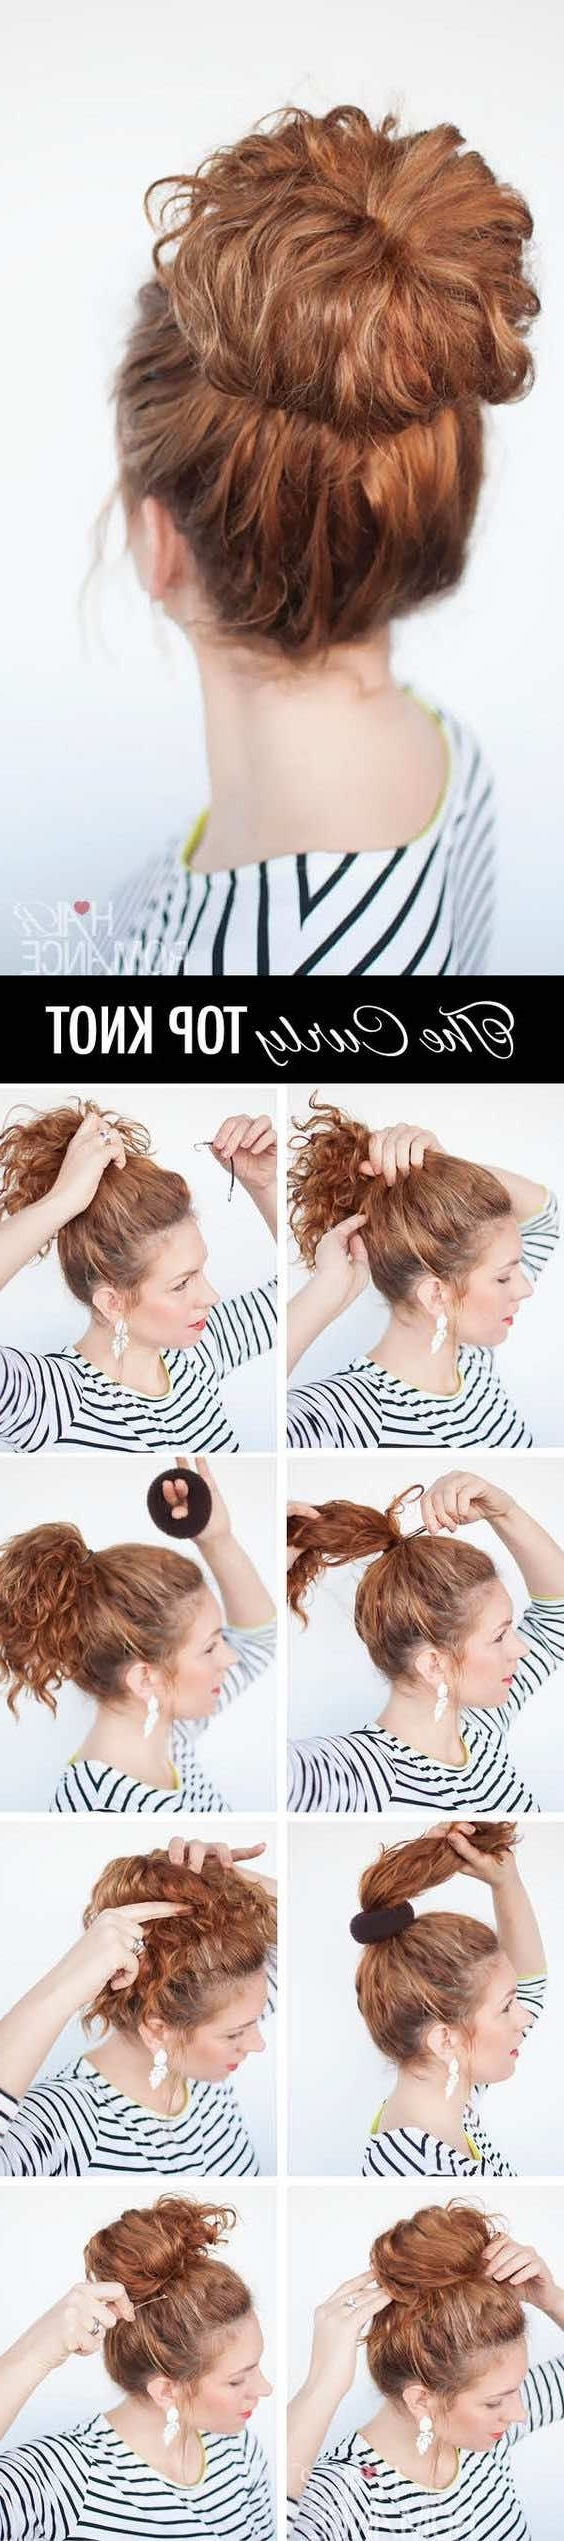 Wedding Hairstyle Tutorialhair Romance – Modwedding With Regard To Famous Knot Wedding Hairstyles (View 13 of 15)